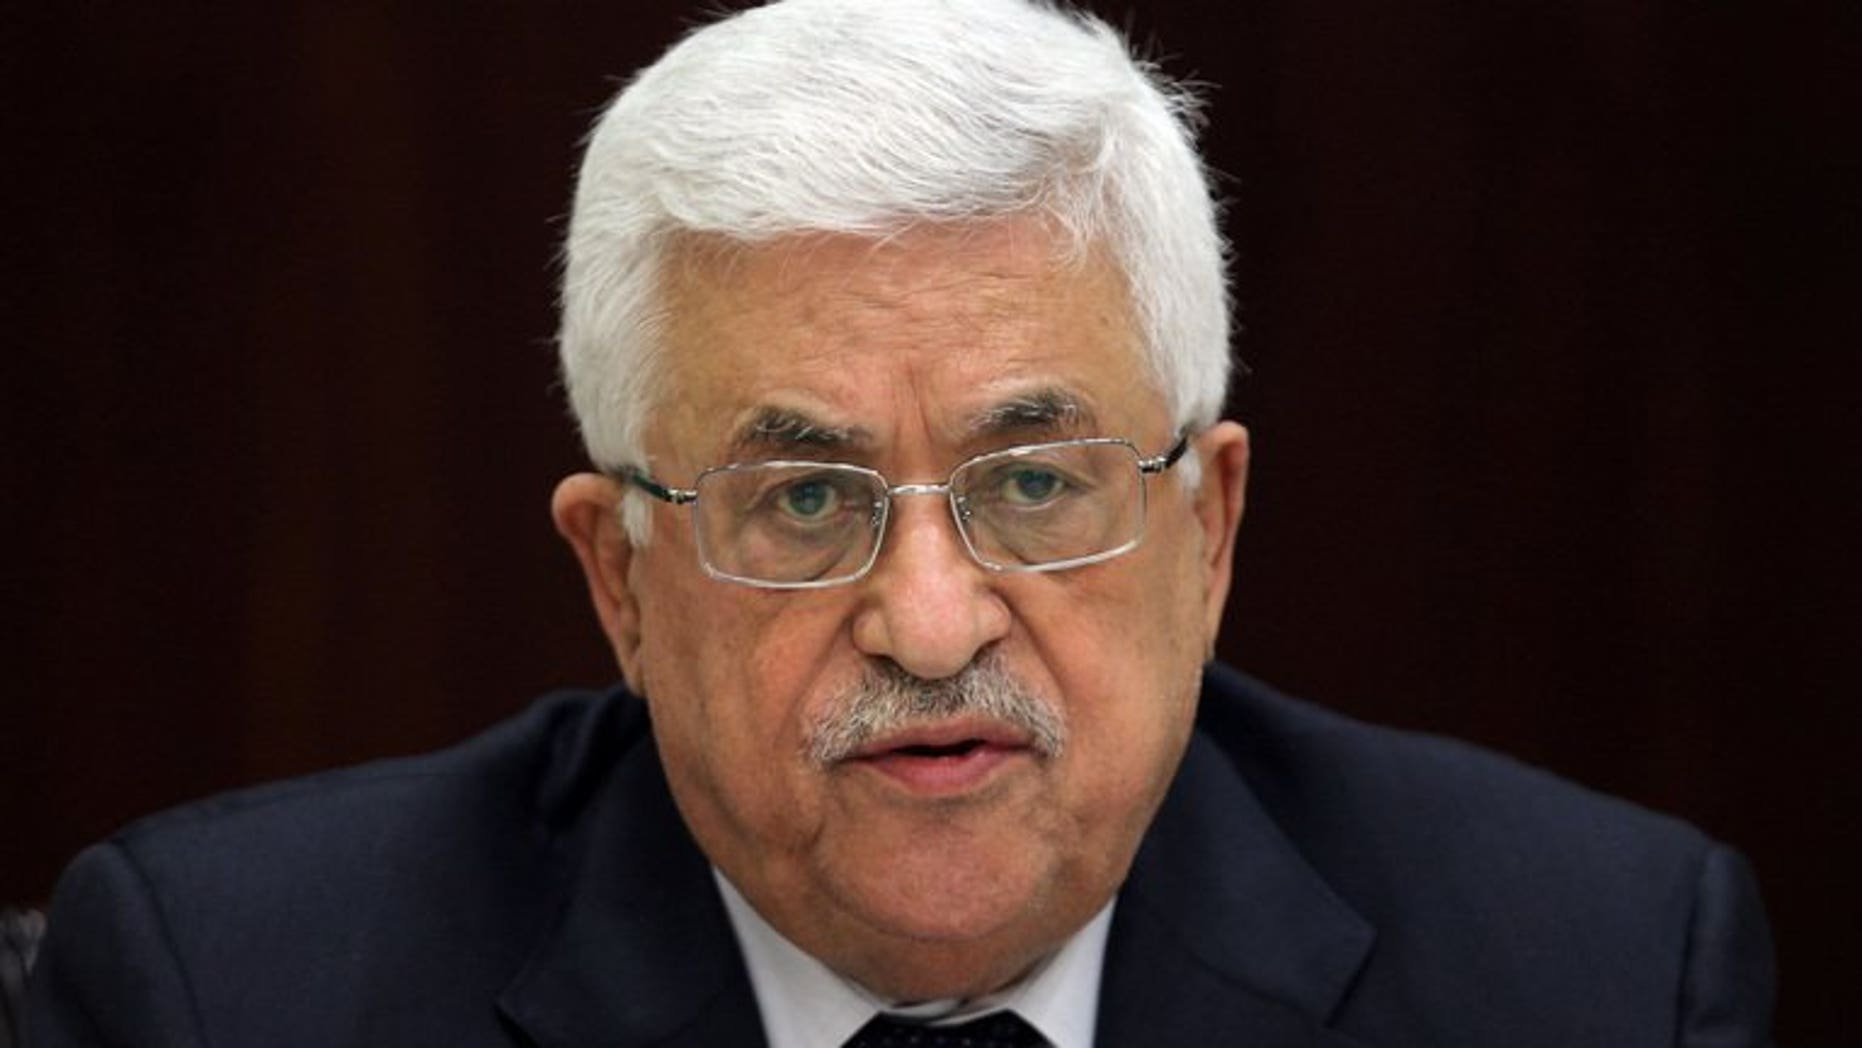 Palestinian president Mahmud Abbas chairs a meeting in Ramallah on May 12, 2013. Palestinian leaders will vote on a US plan under which peace talks with Israel will not depend on a settlement ban, a key Palestinian demand, a PLO official tells AFP.